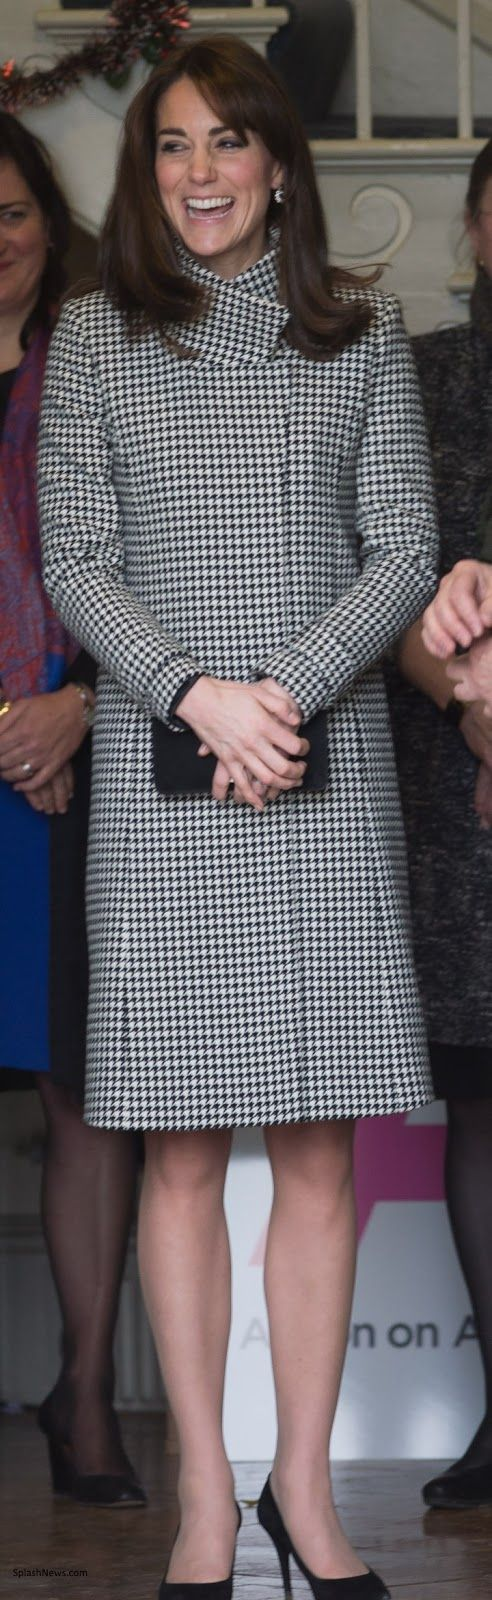 Duchess Kate: Kate in hrhduchesskate:  Visit to Action on Addiction Centre for Treatment Studies, Warminster, Wiltshire, December 10, 2015-The Duchess of Cambridge paired a Reiss Rubik Houndstooth Wrap Coat with her teal 'Alice' Emilia Wickstead dress and accessorized with her Stuart Weitzman Power pumps, Mulberry black suede clutch, and diamond and sapphire earrings.